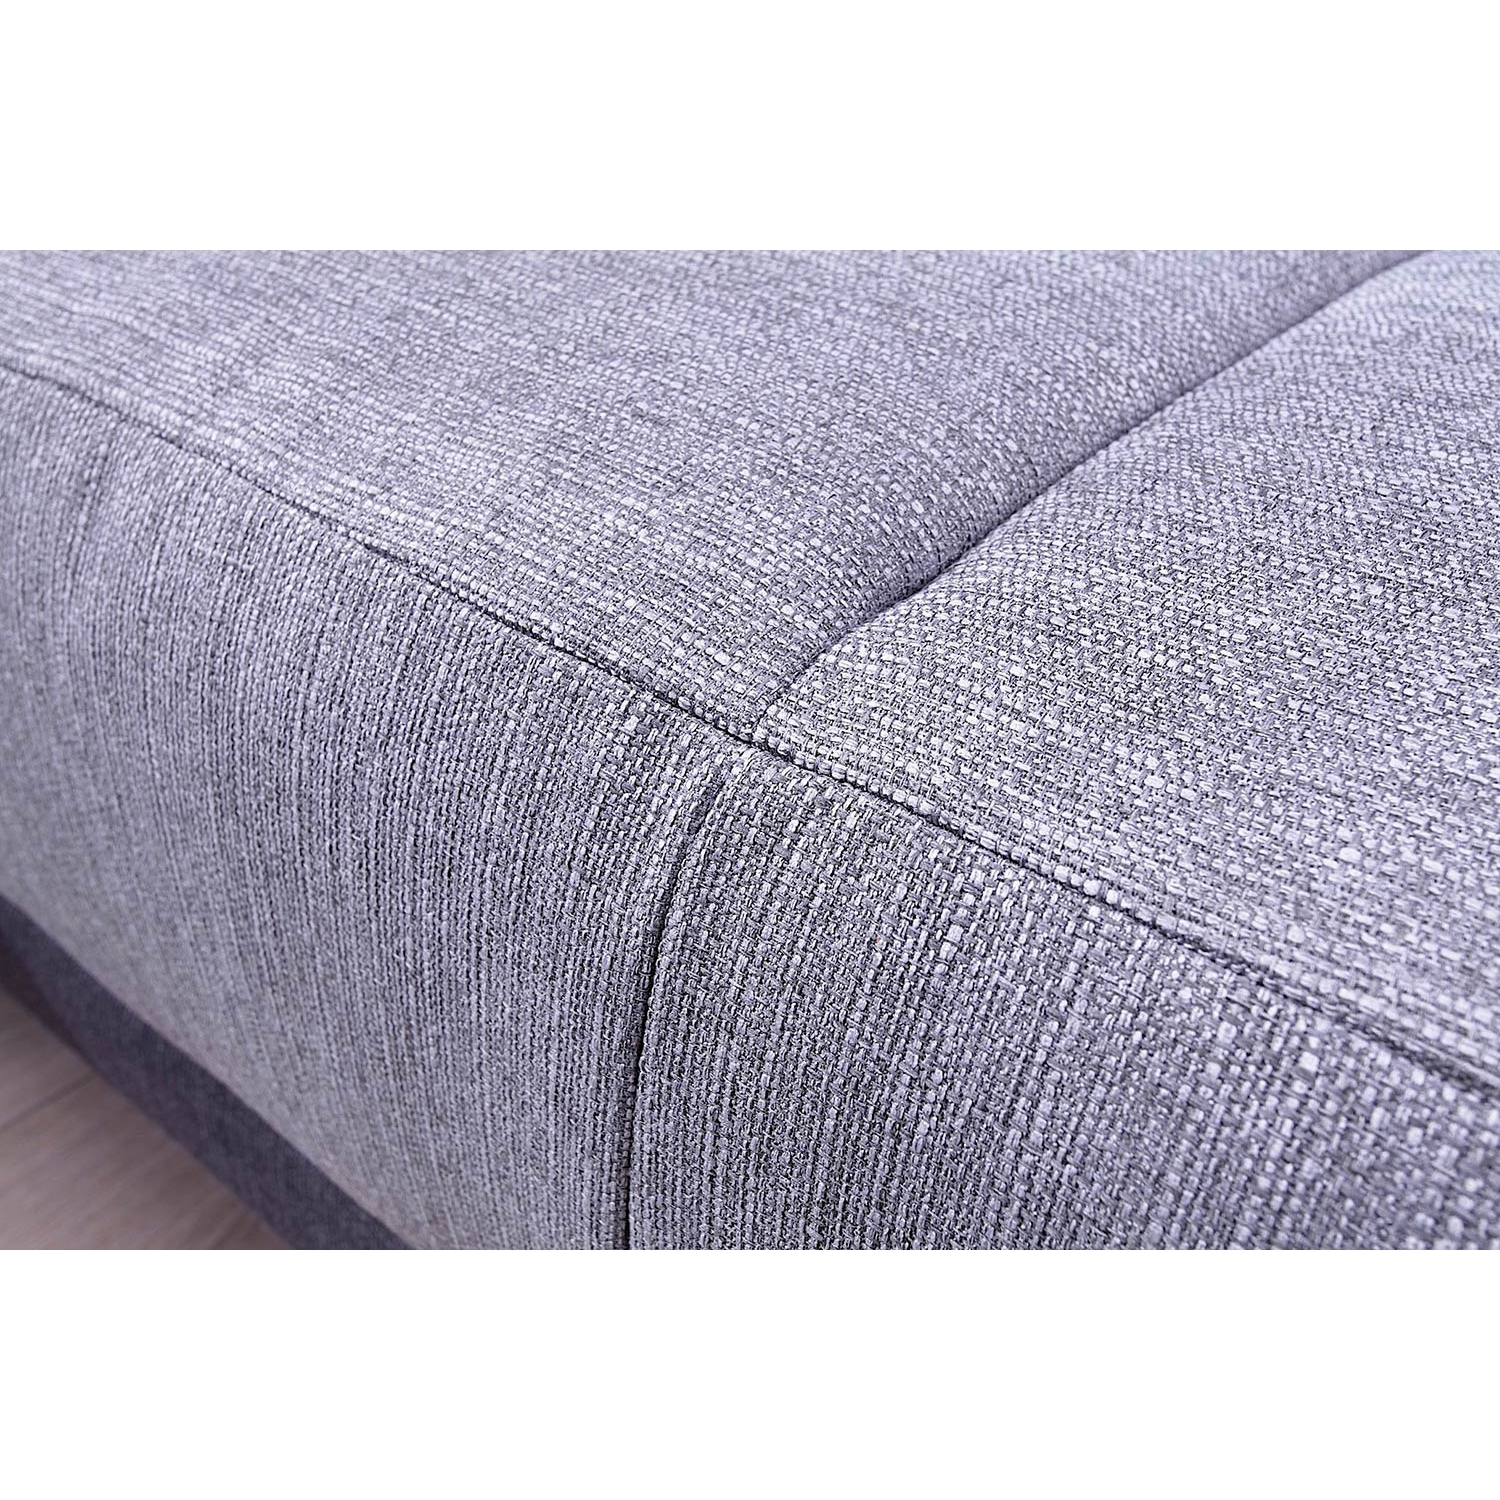 Canapé convertible scandinave Minty Grand Angle gauche - tissu gris clair/gris anthracite